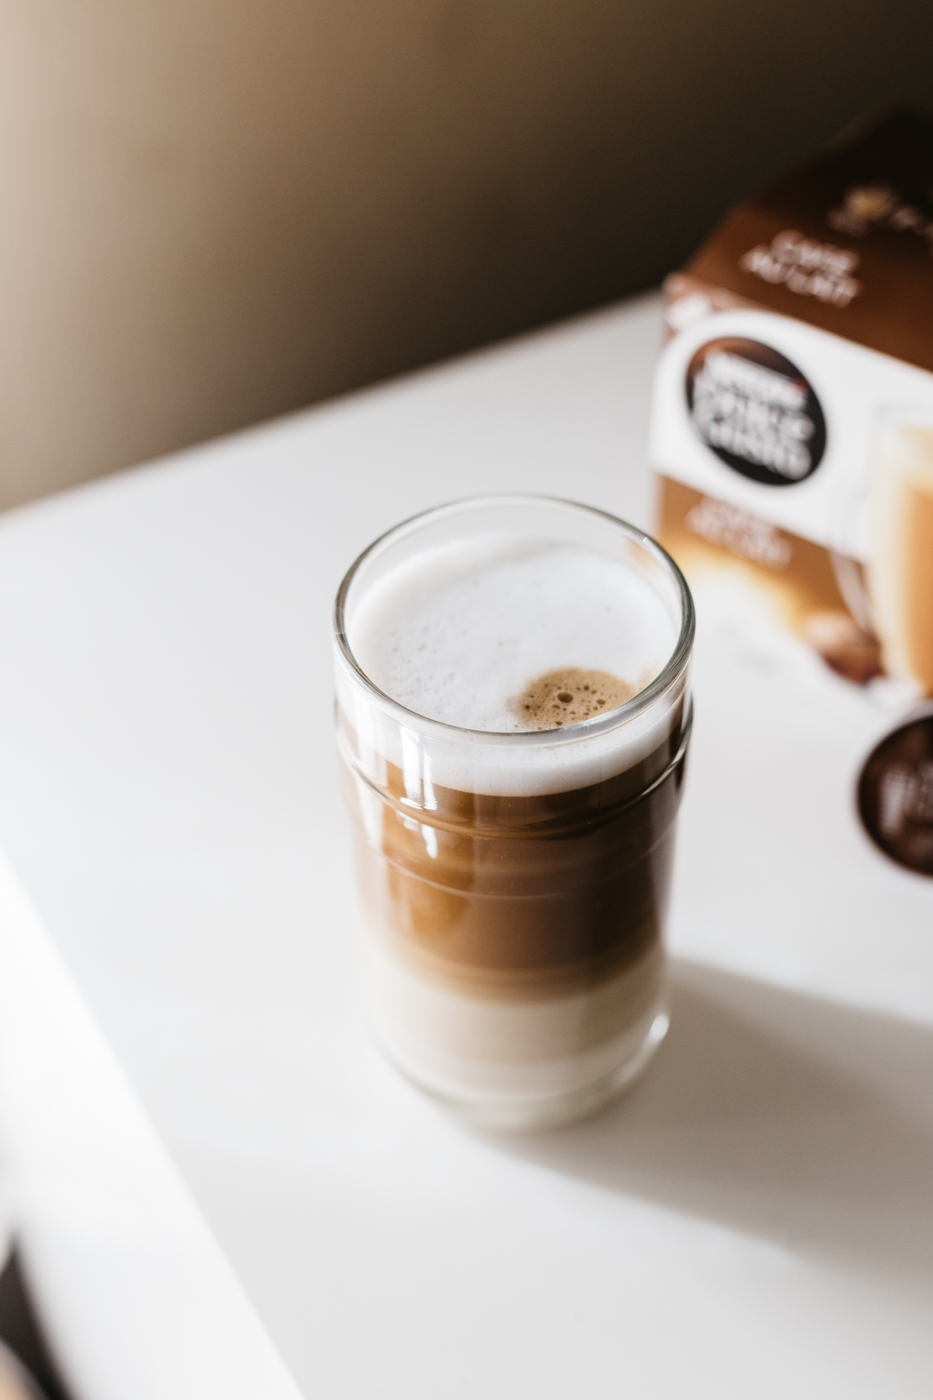 nescafe dolce gusto, morning routines, how to be productive in the morning, quick and easy coffee machine, lifestyle blog